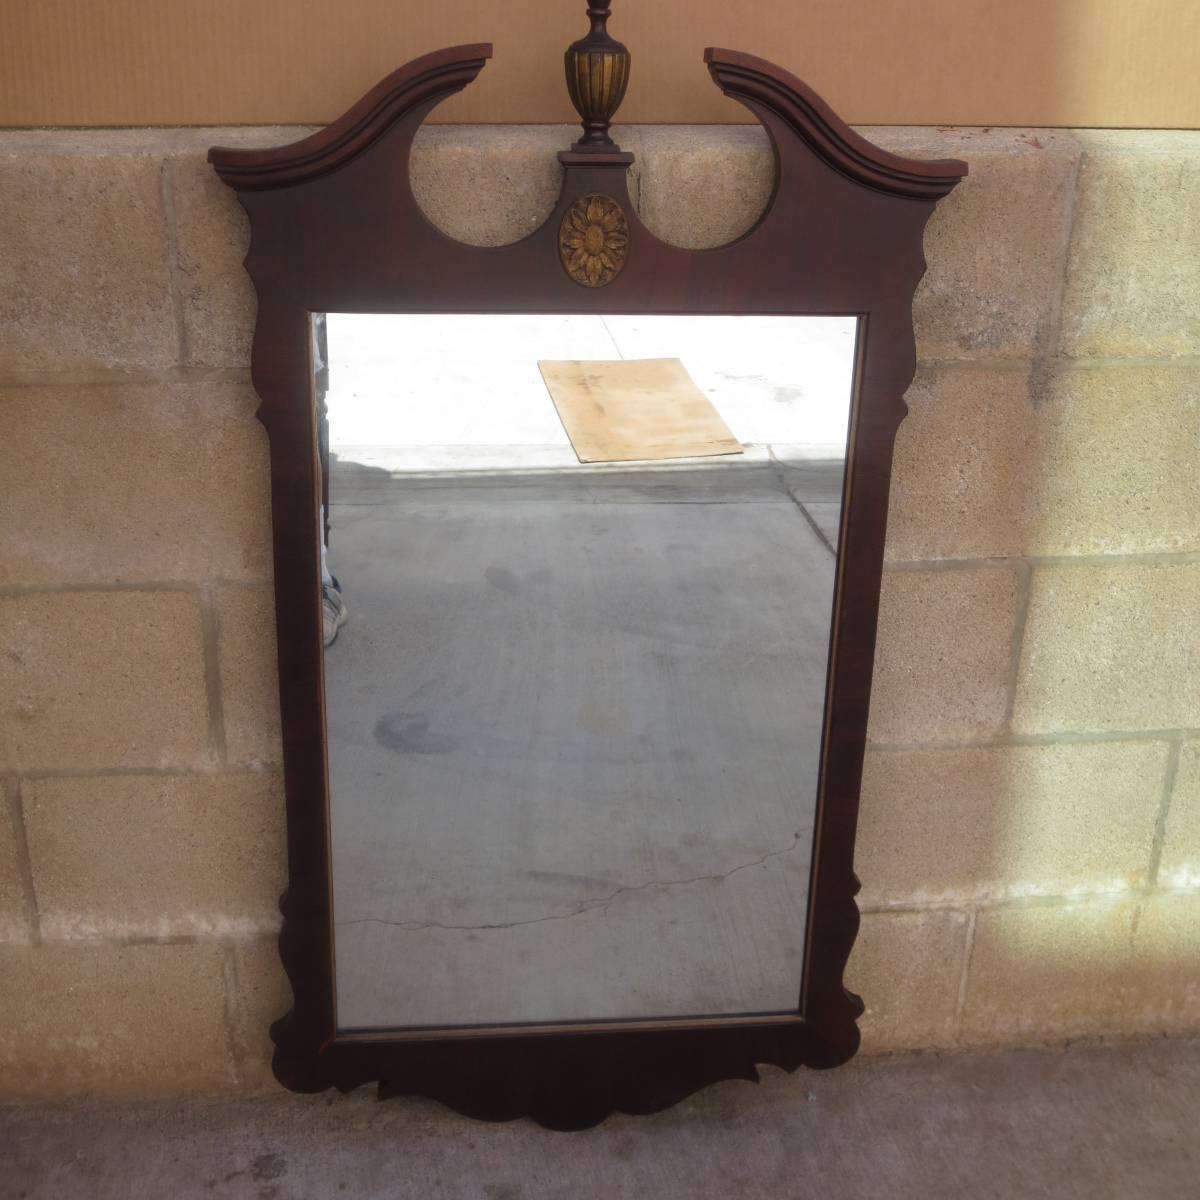 Antique Mirrors, Vintage Mirrors, Antique Wall Mirrors, And French with regard to Old Fashioned Mirrors (Image 9 of 25)